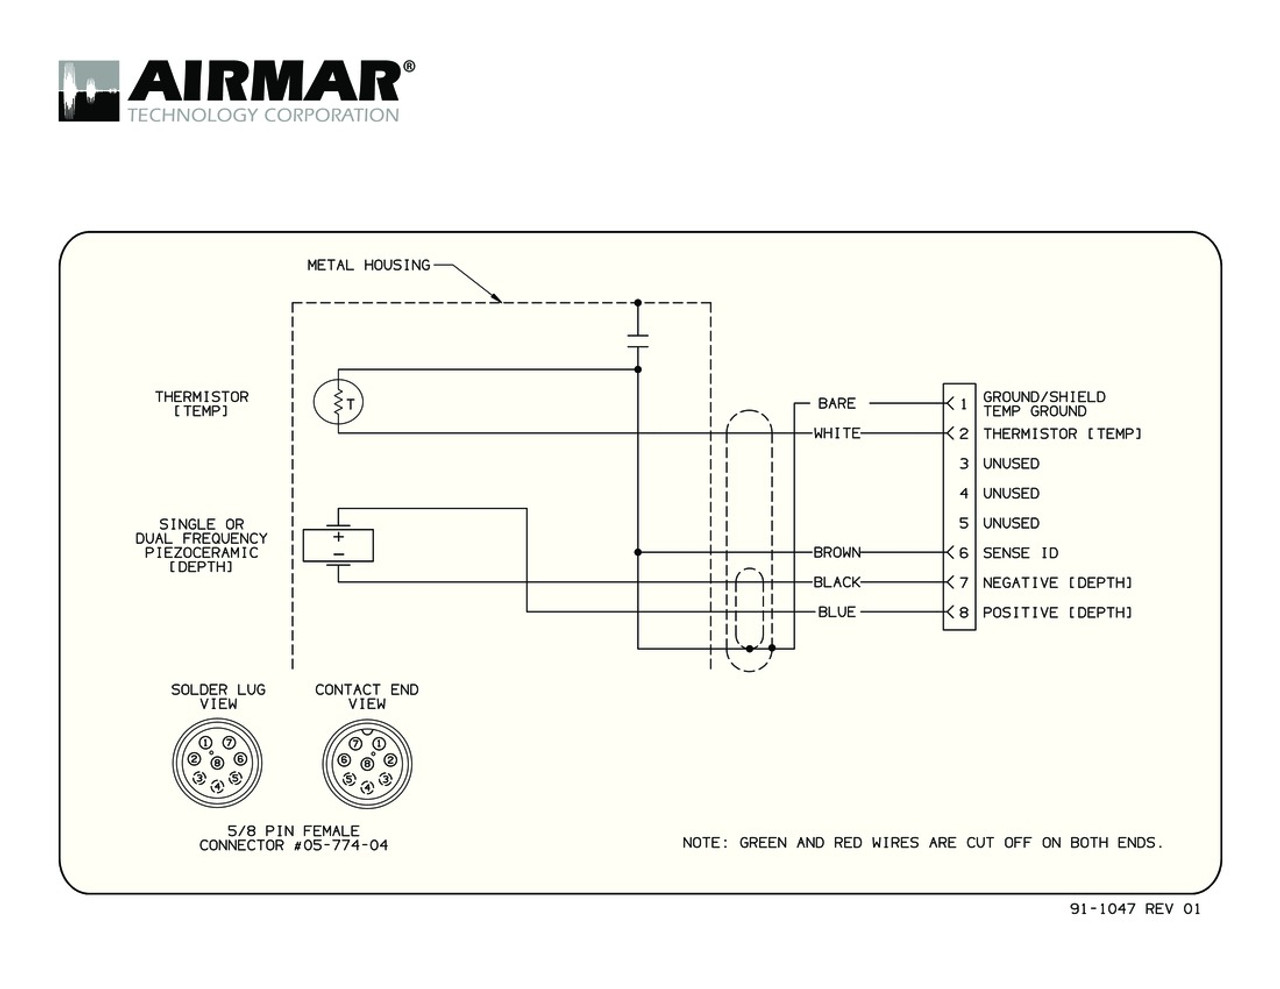 WRG-2833] Garmin Airmar 6 Pin Wiring Diagram on